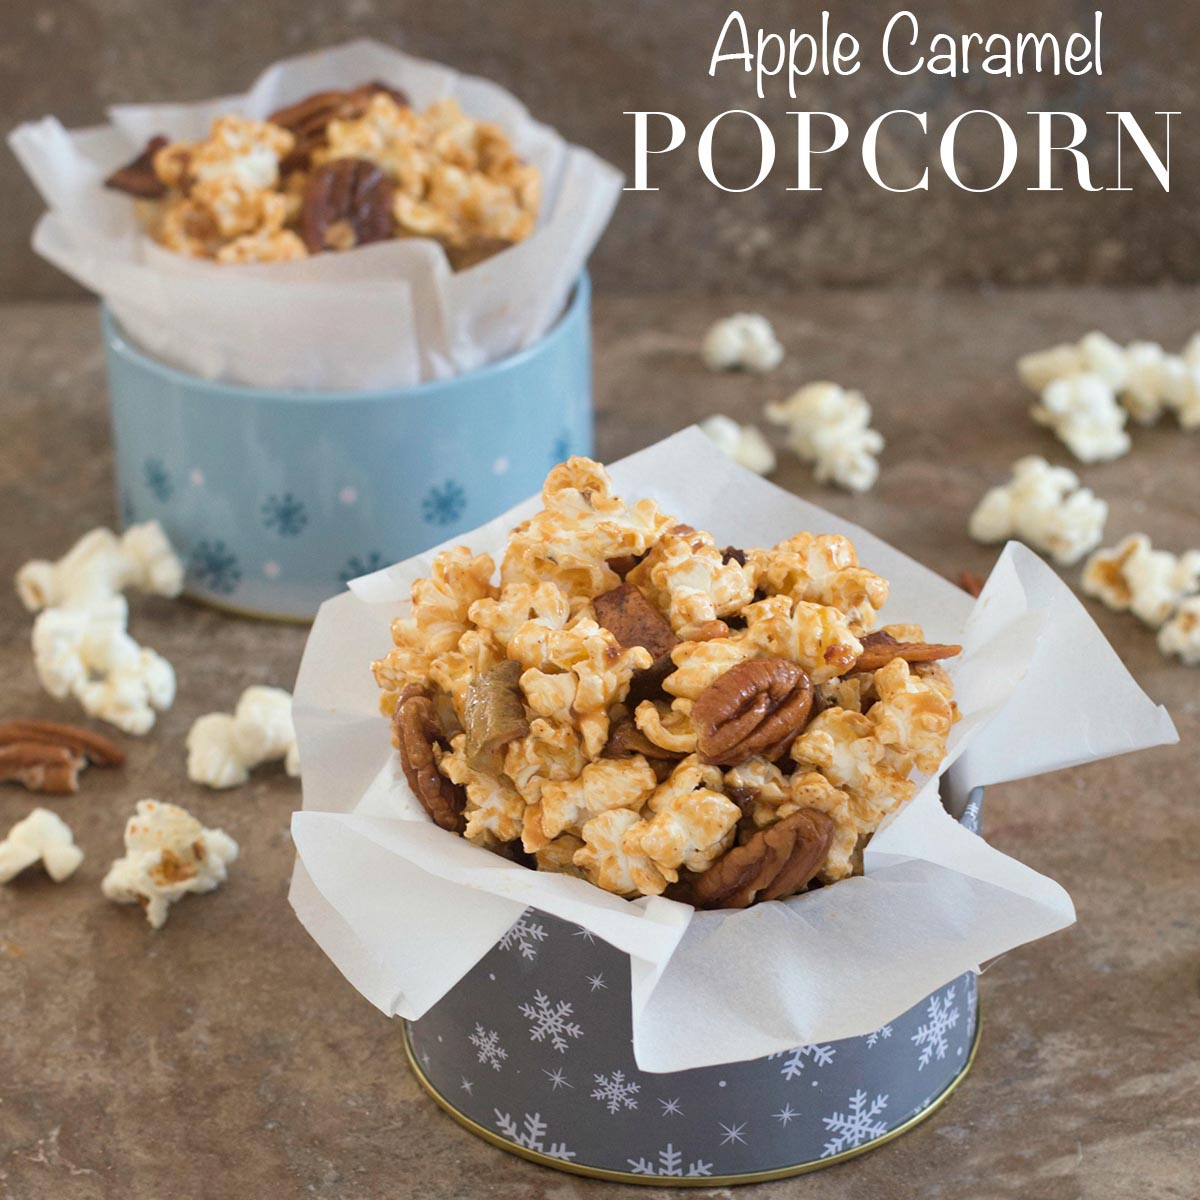 Front view of apple caramel popcorn in holiday containers